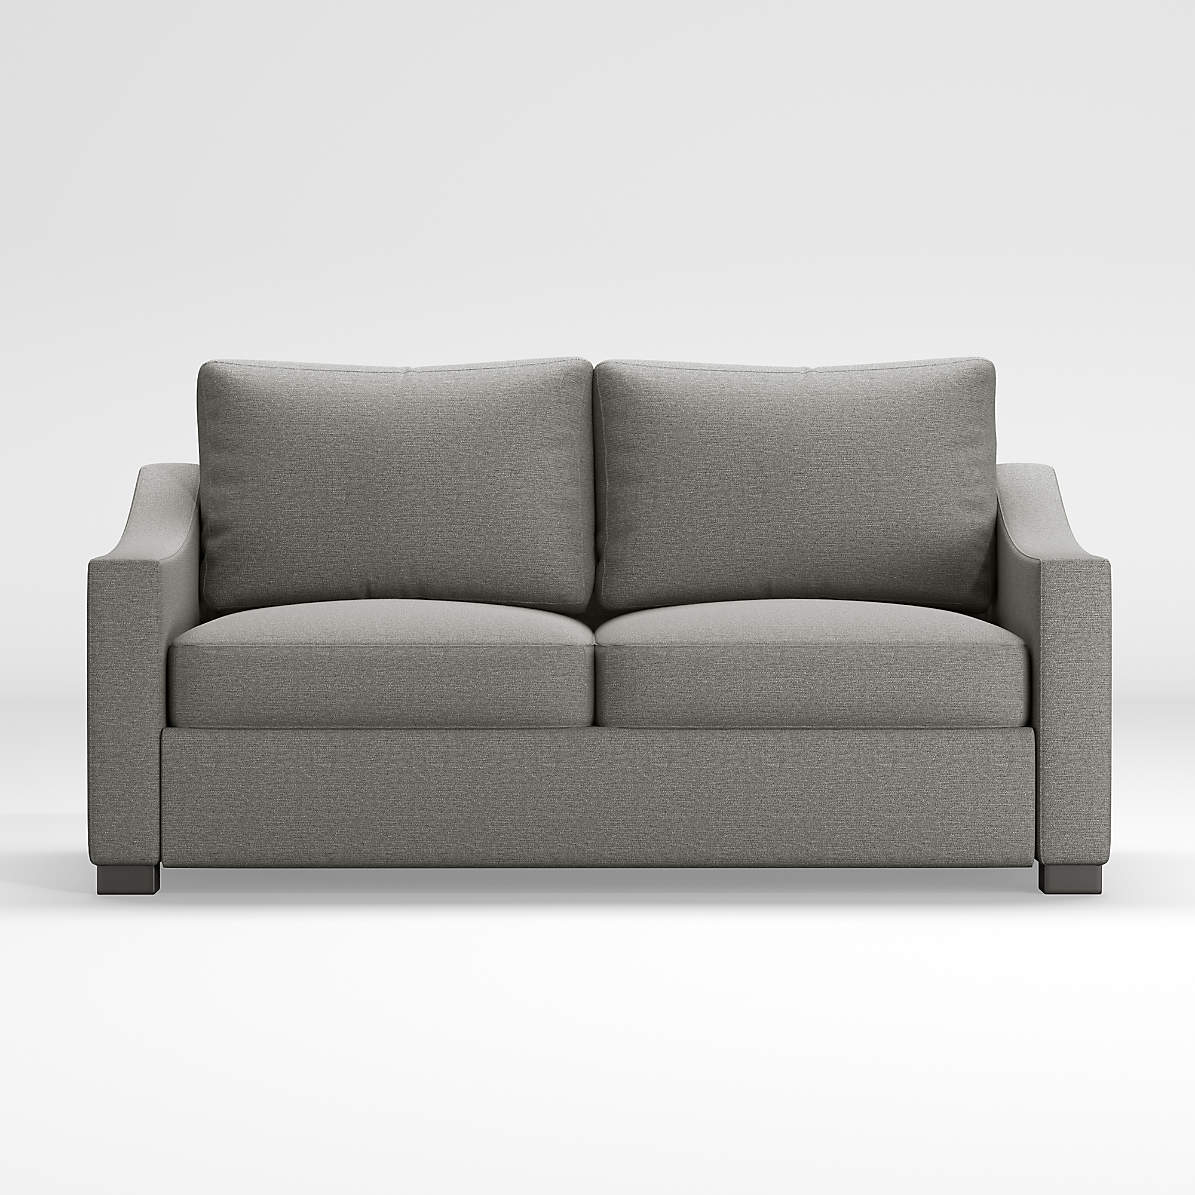 Fuller Queen Slope Arm Sleeper Sofa Reviews Crate And Barrel